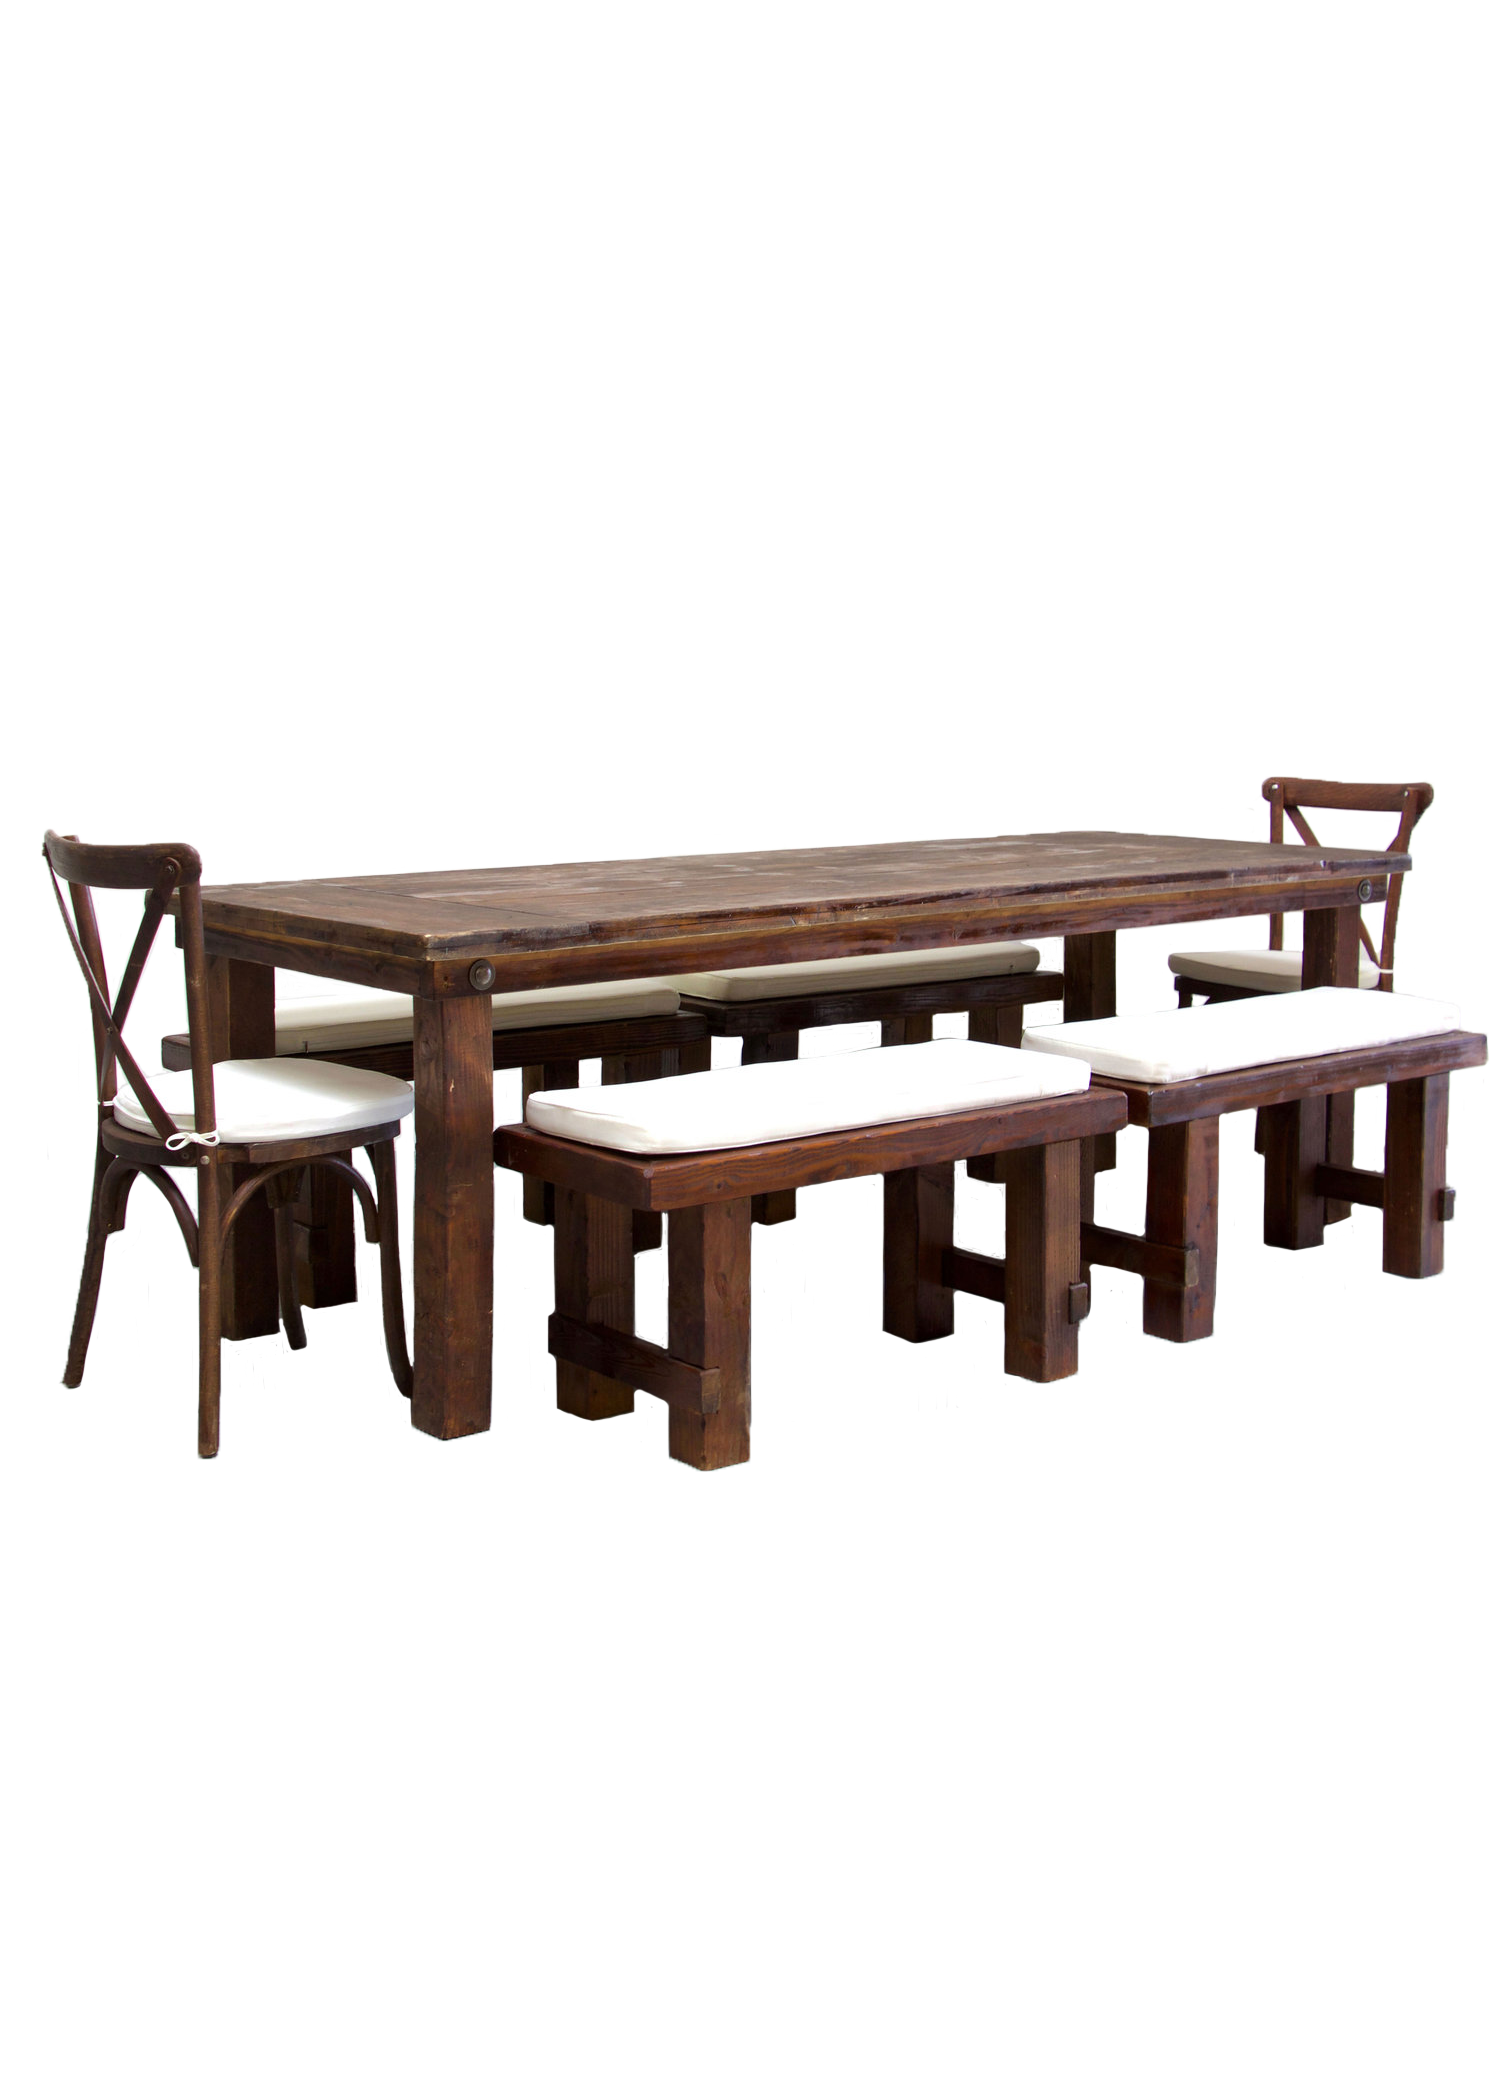 Mahogany Farm Table with 4 Short Benches & 2 Cross-Back Chairs $160